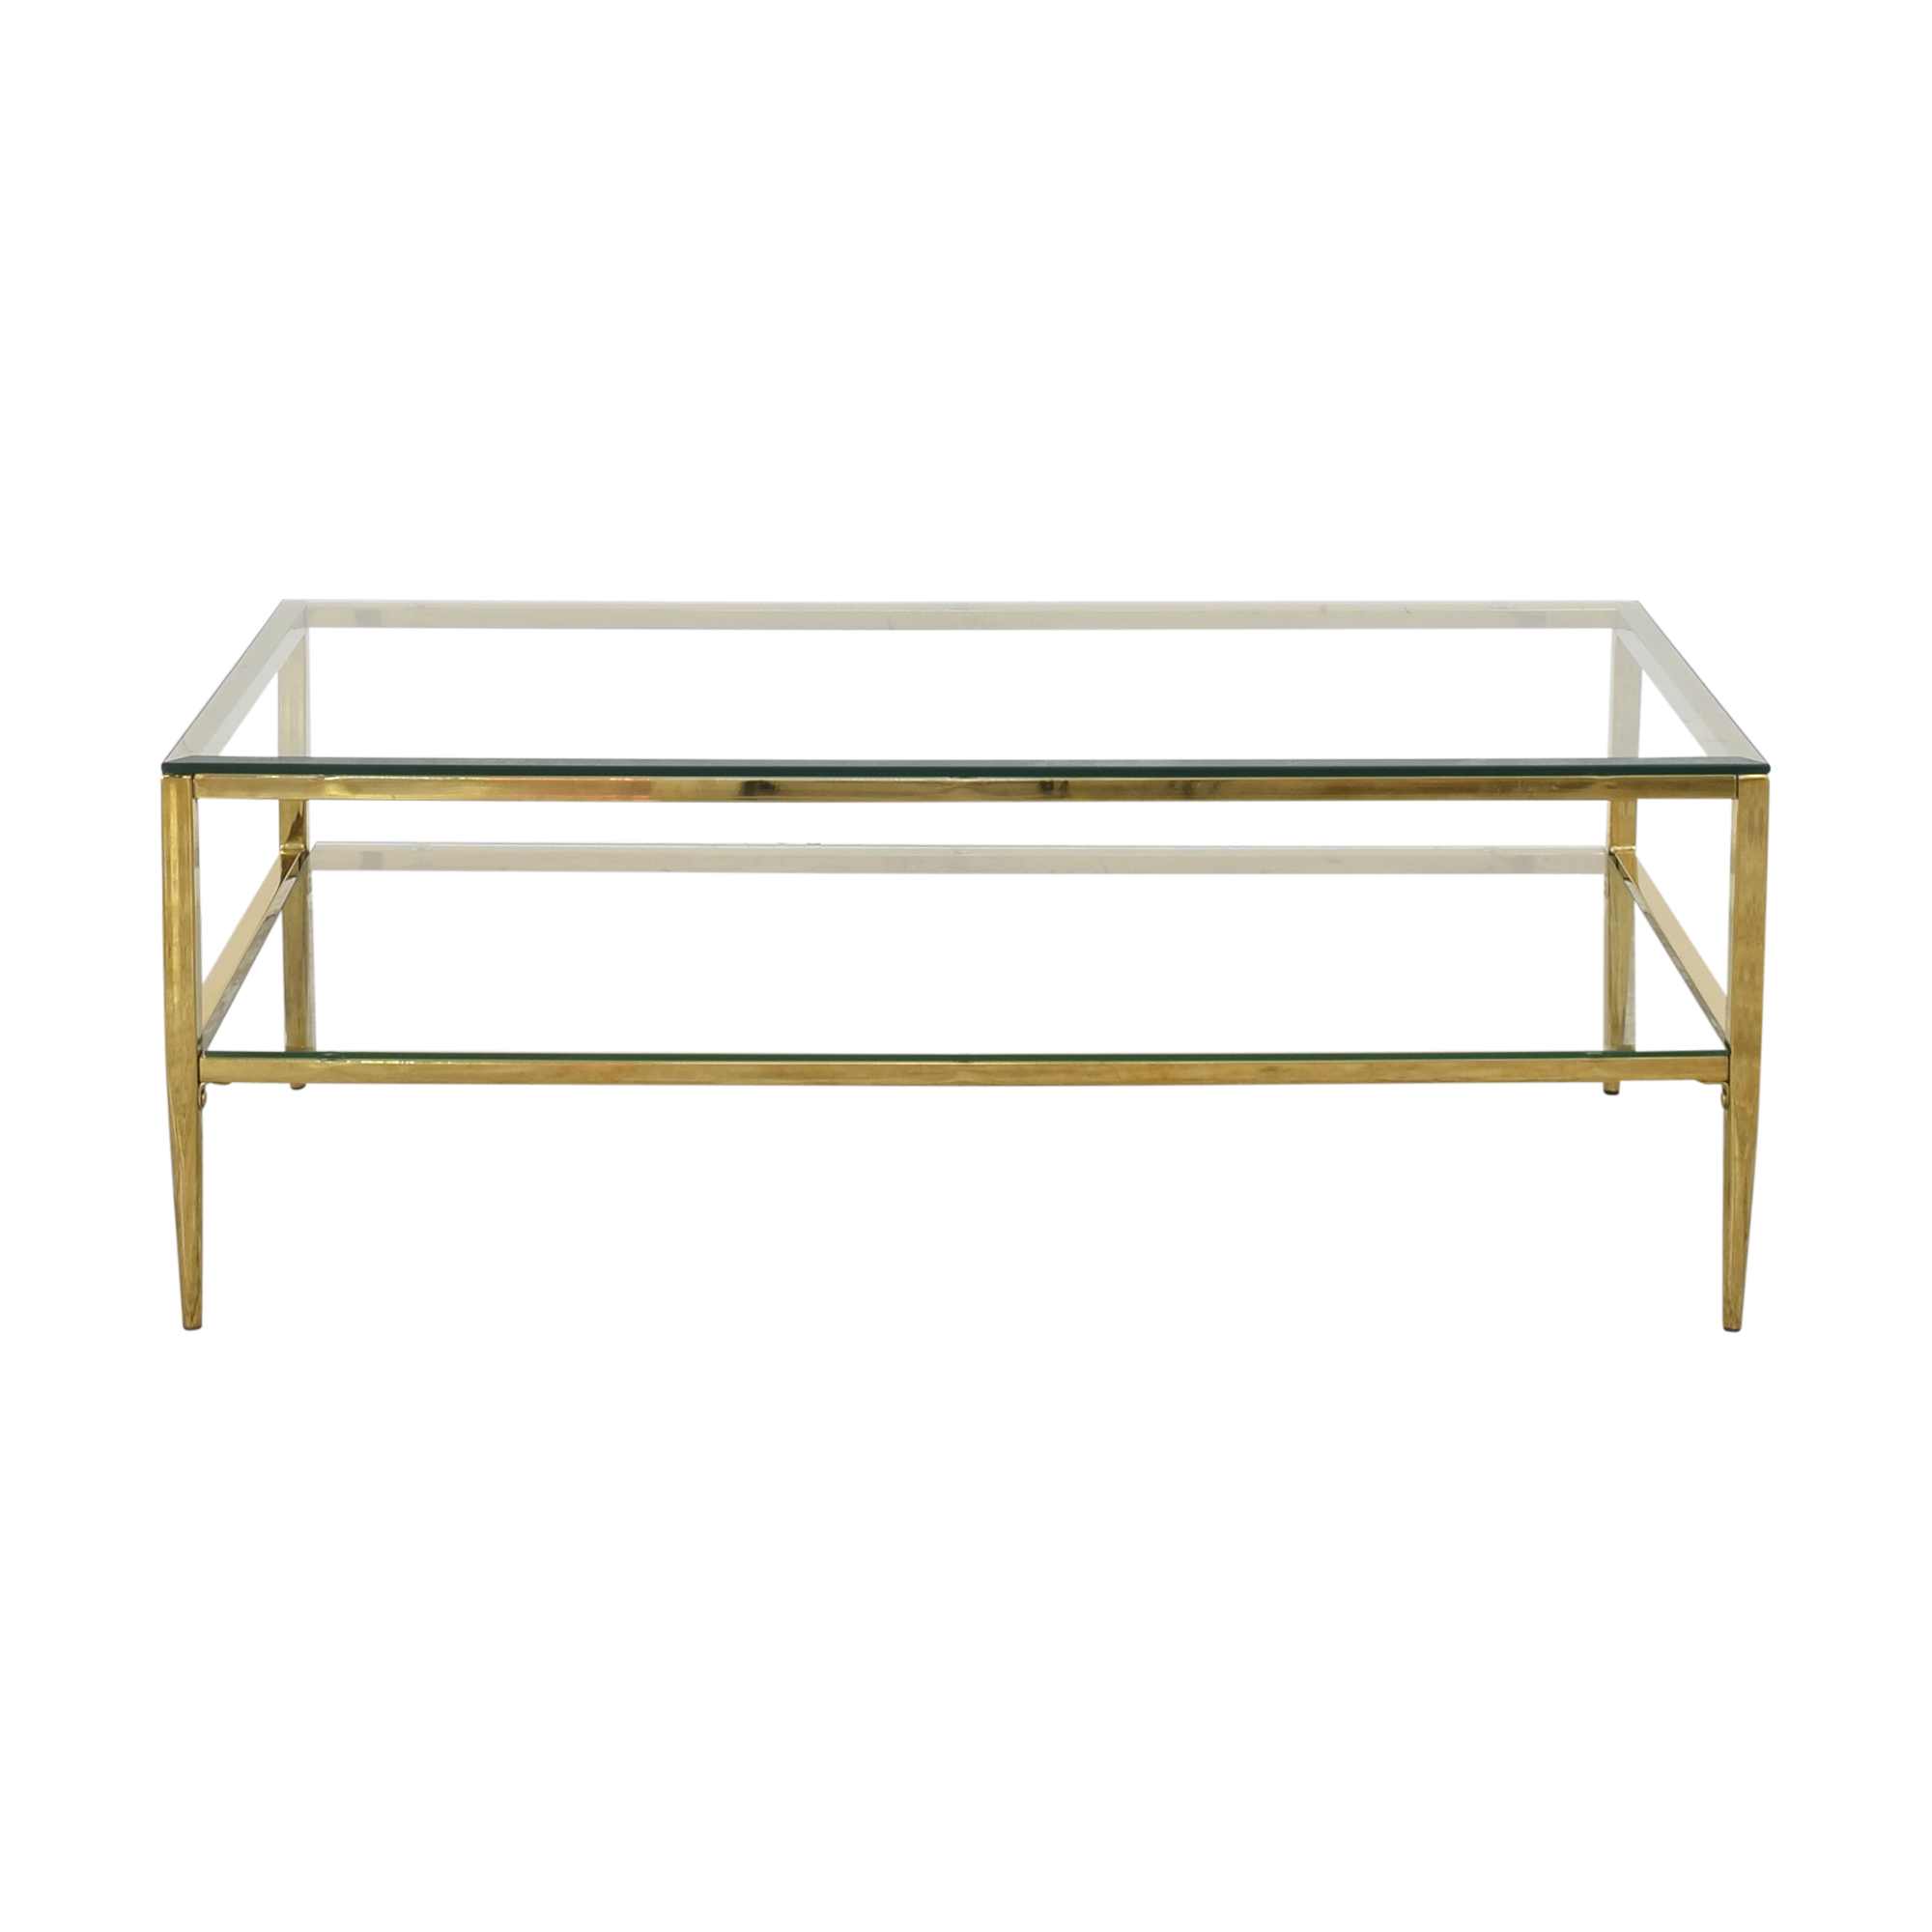 Two Tier Glass Coffee Table ct